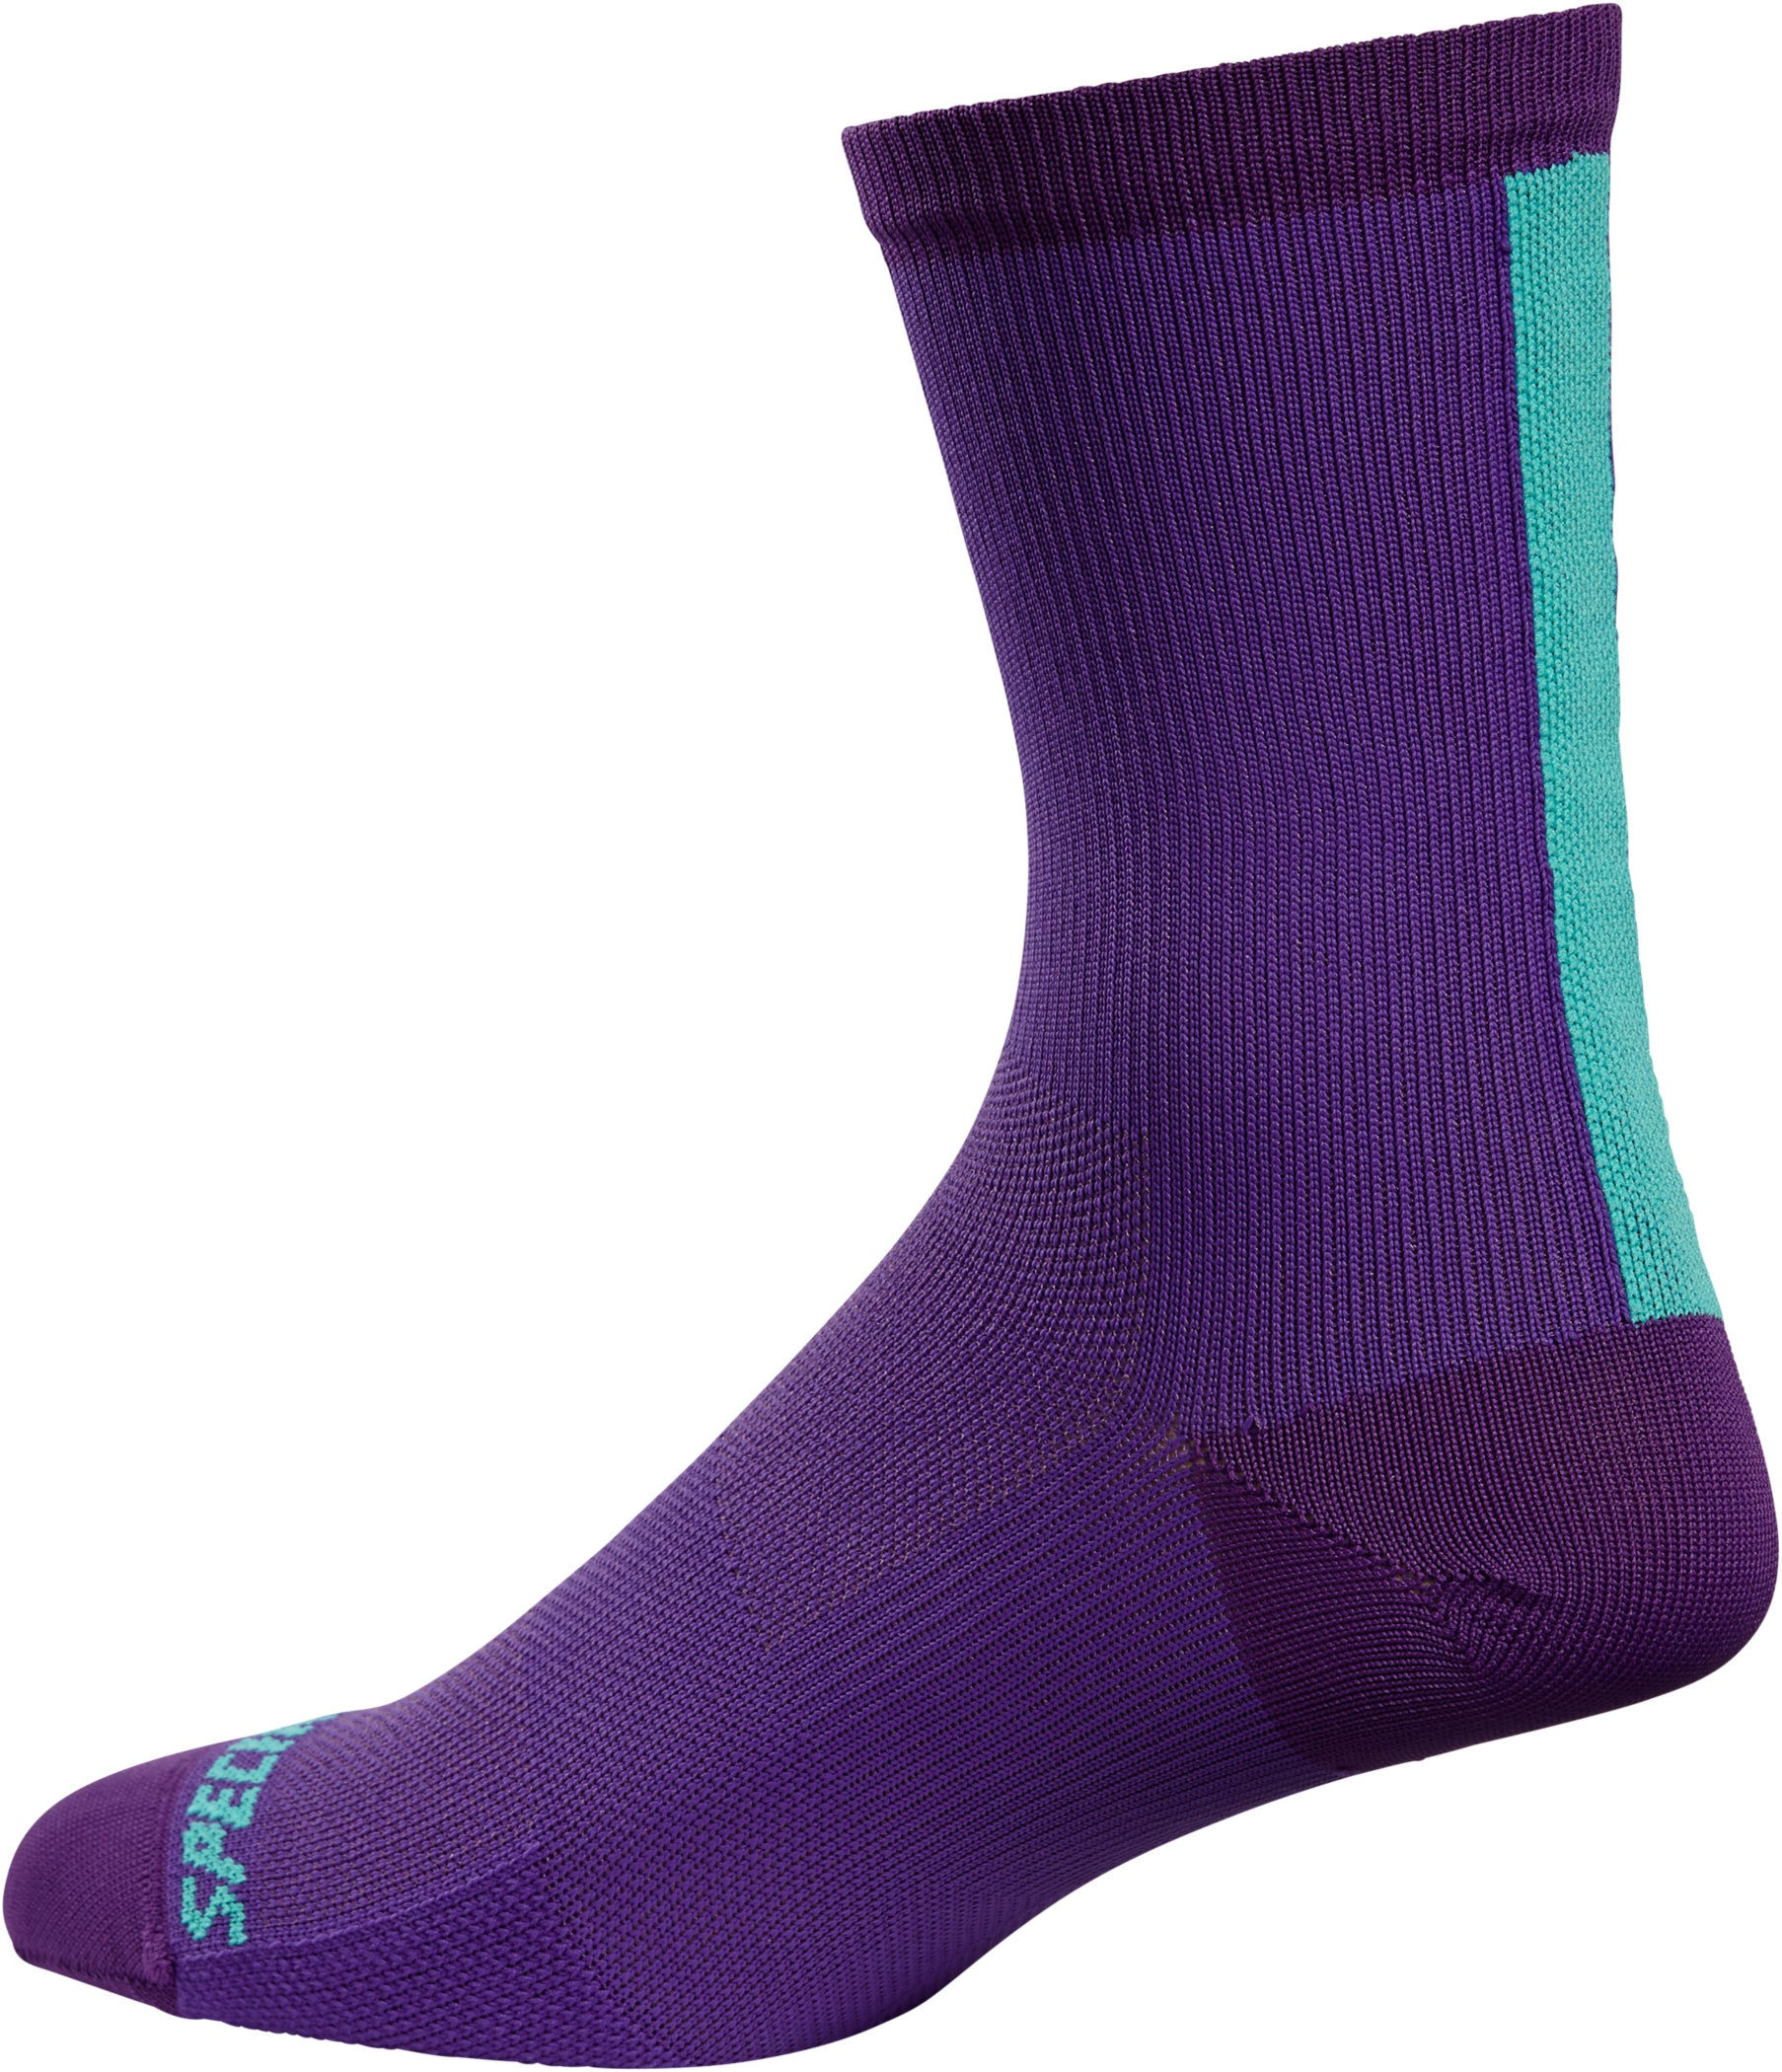 Road Tall Socks